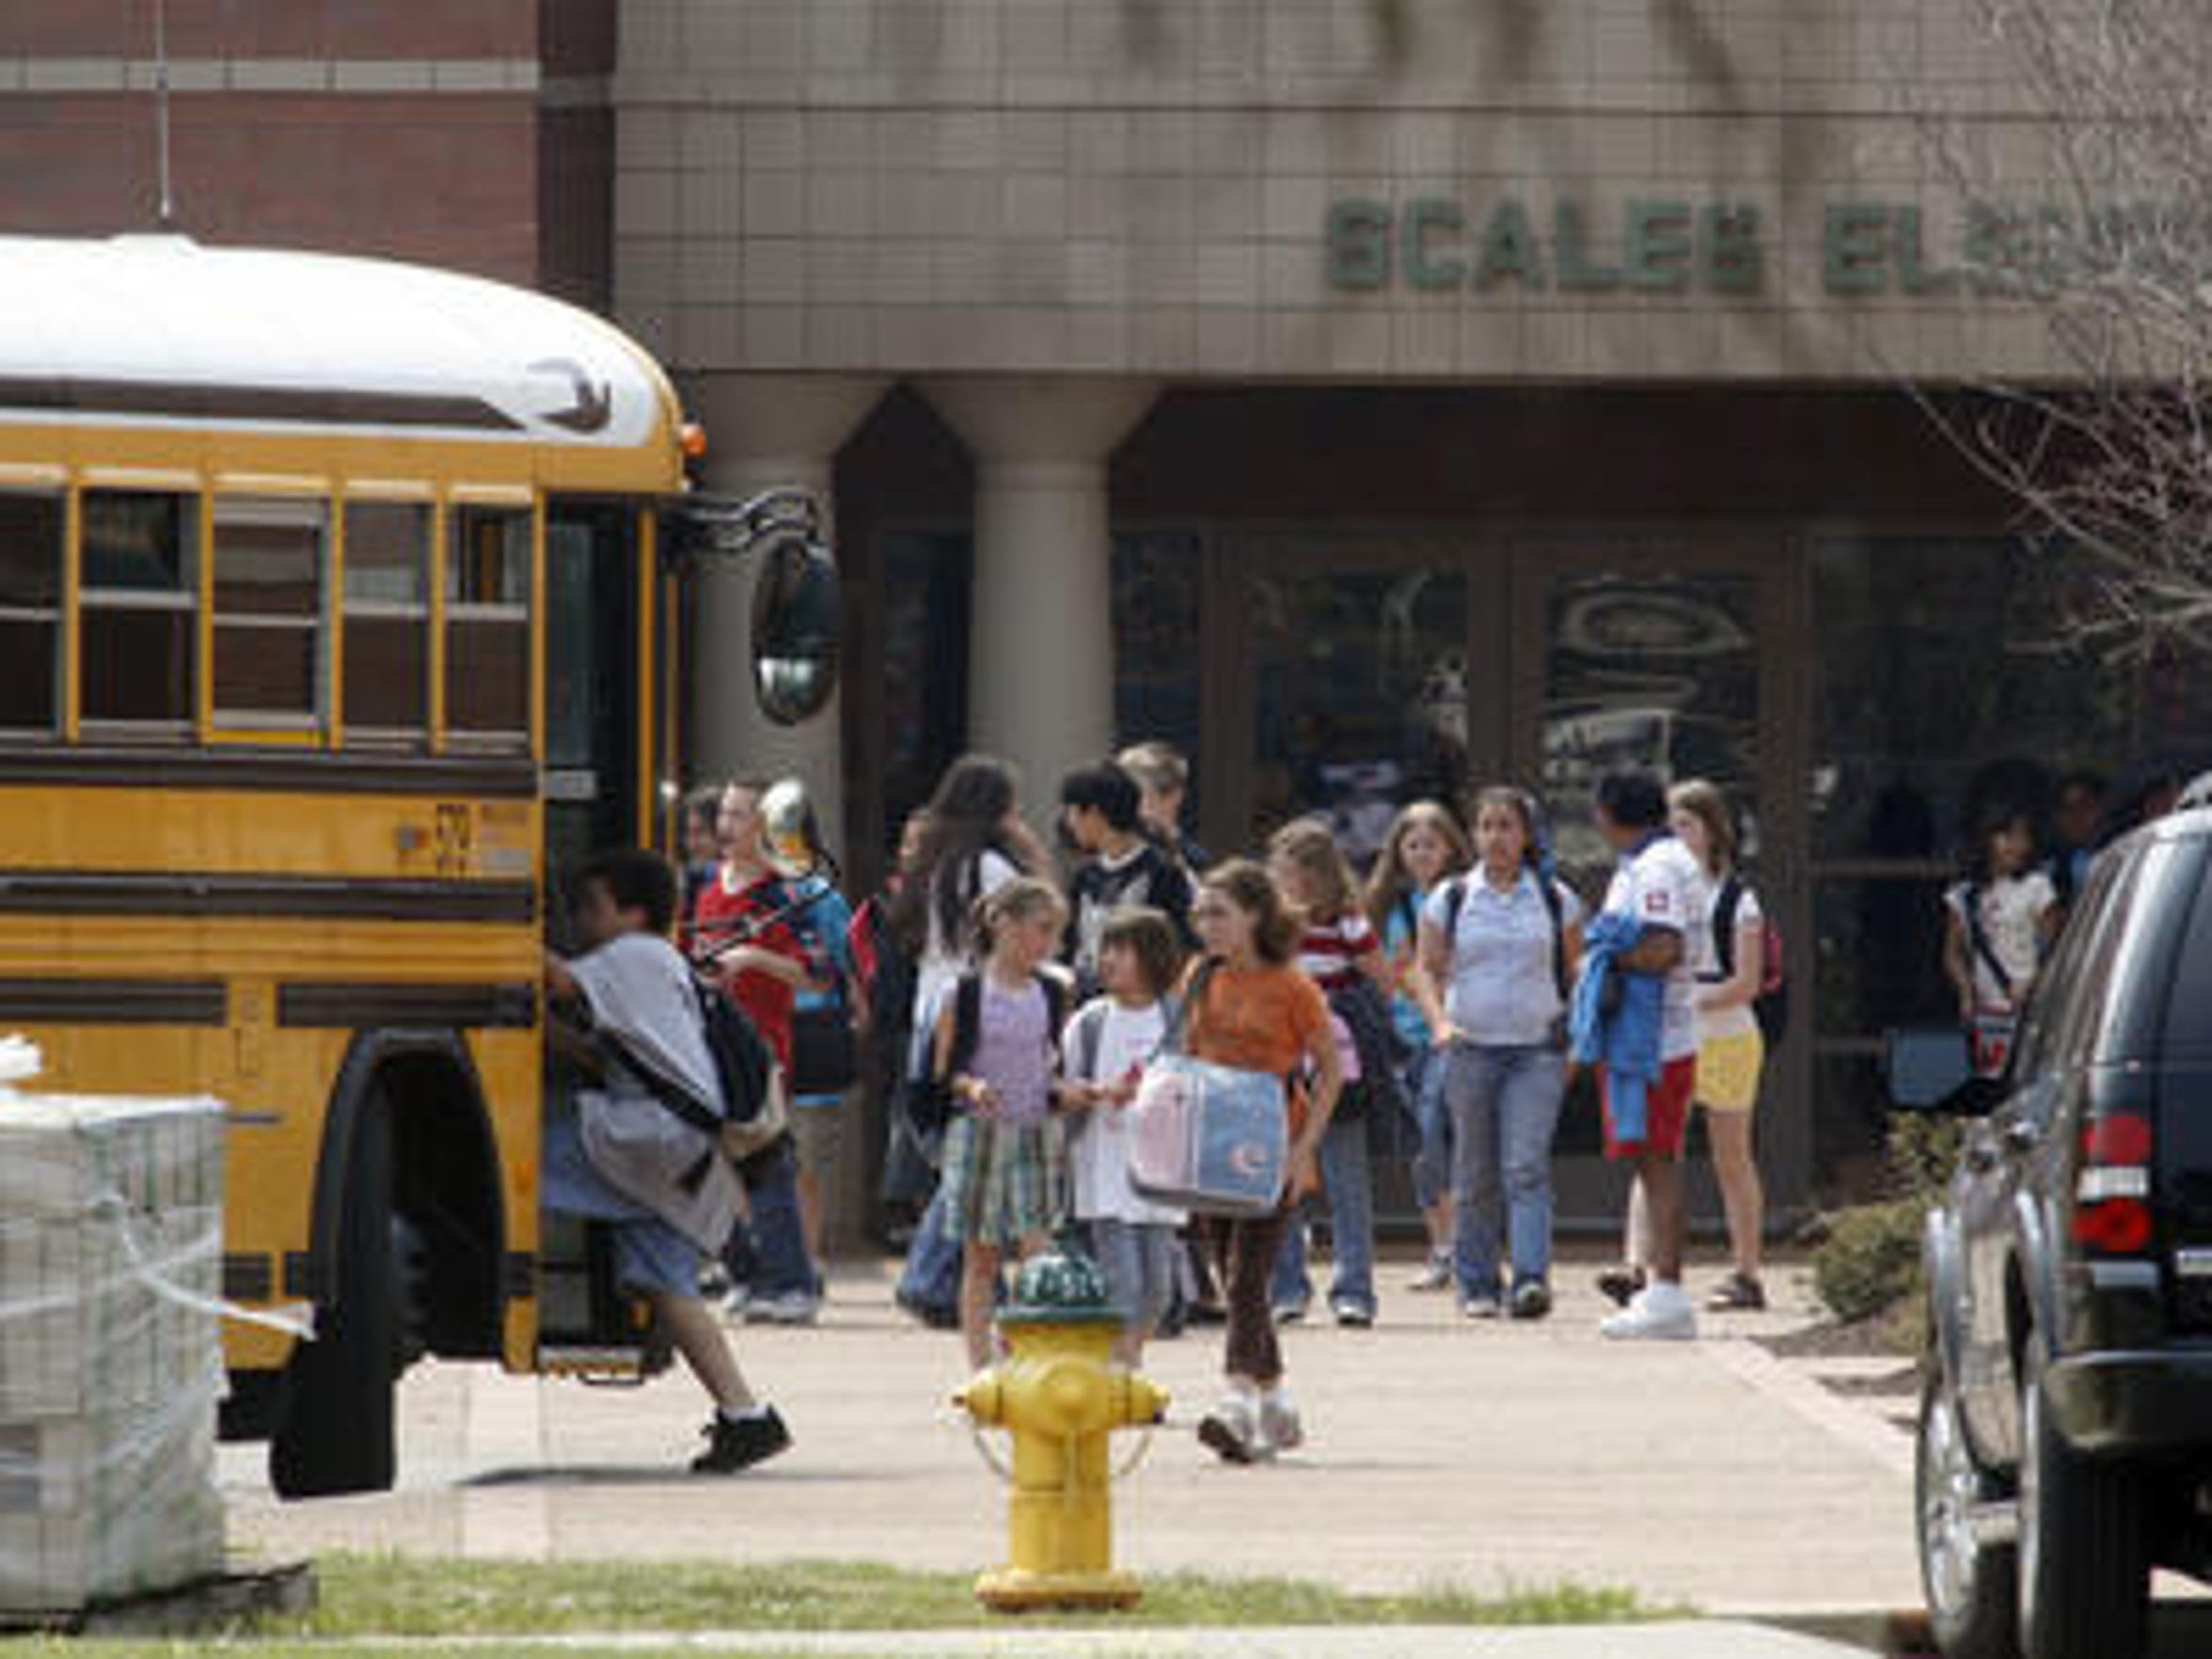 This file photo shows students at Scales Elementary